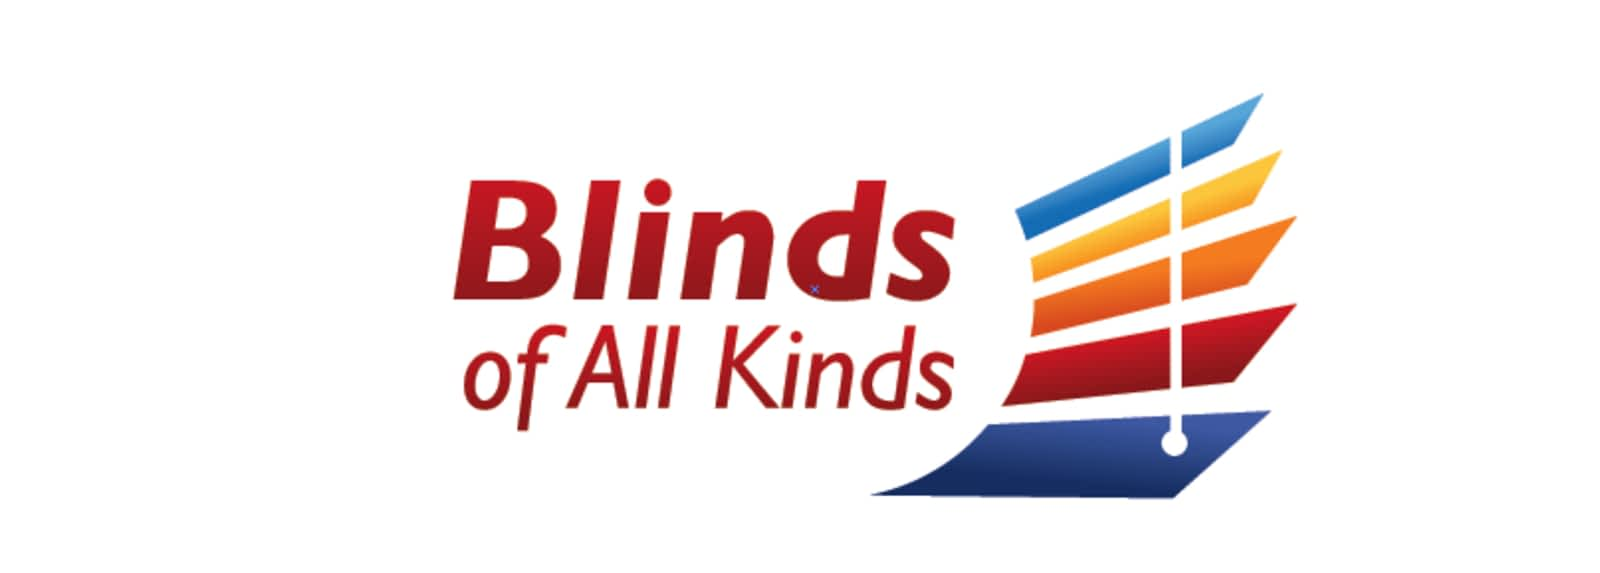 kinds all opening merivale of nepean rd ontario hours bus on blinds